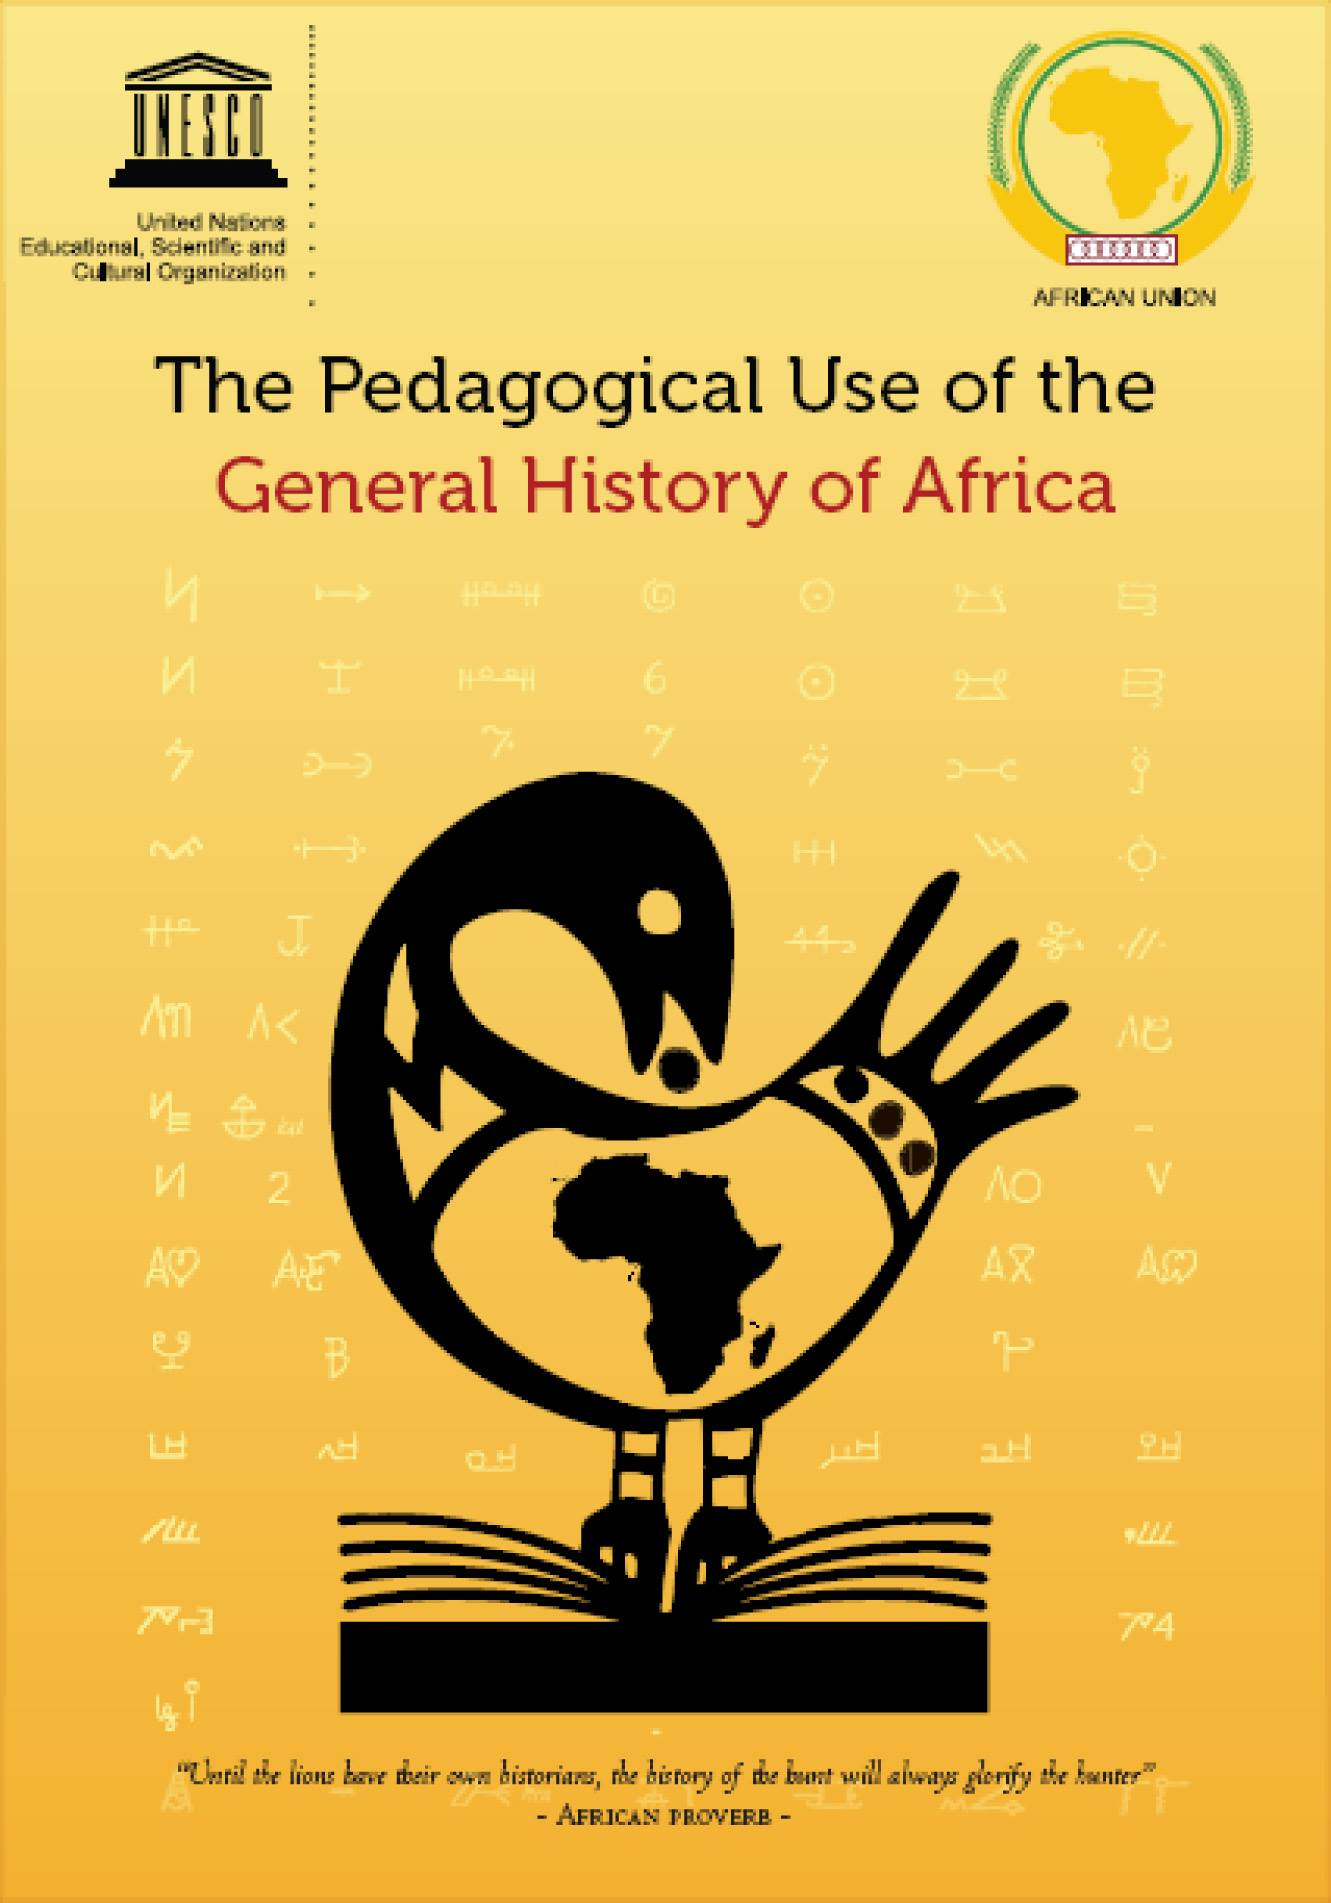 History teaching in Africa